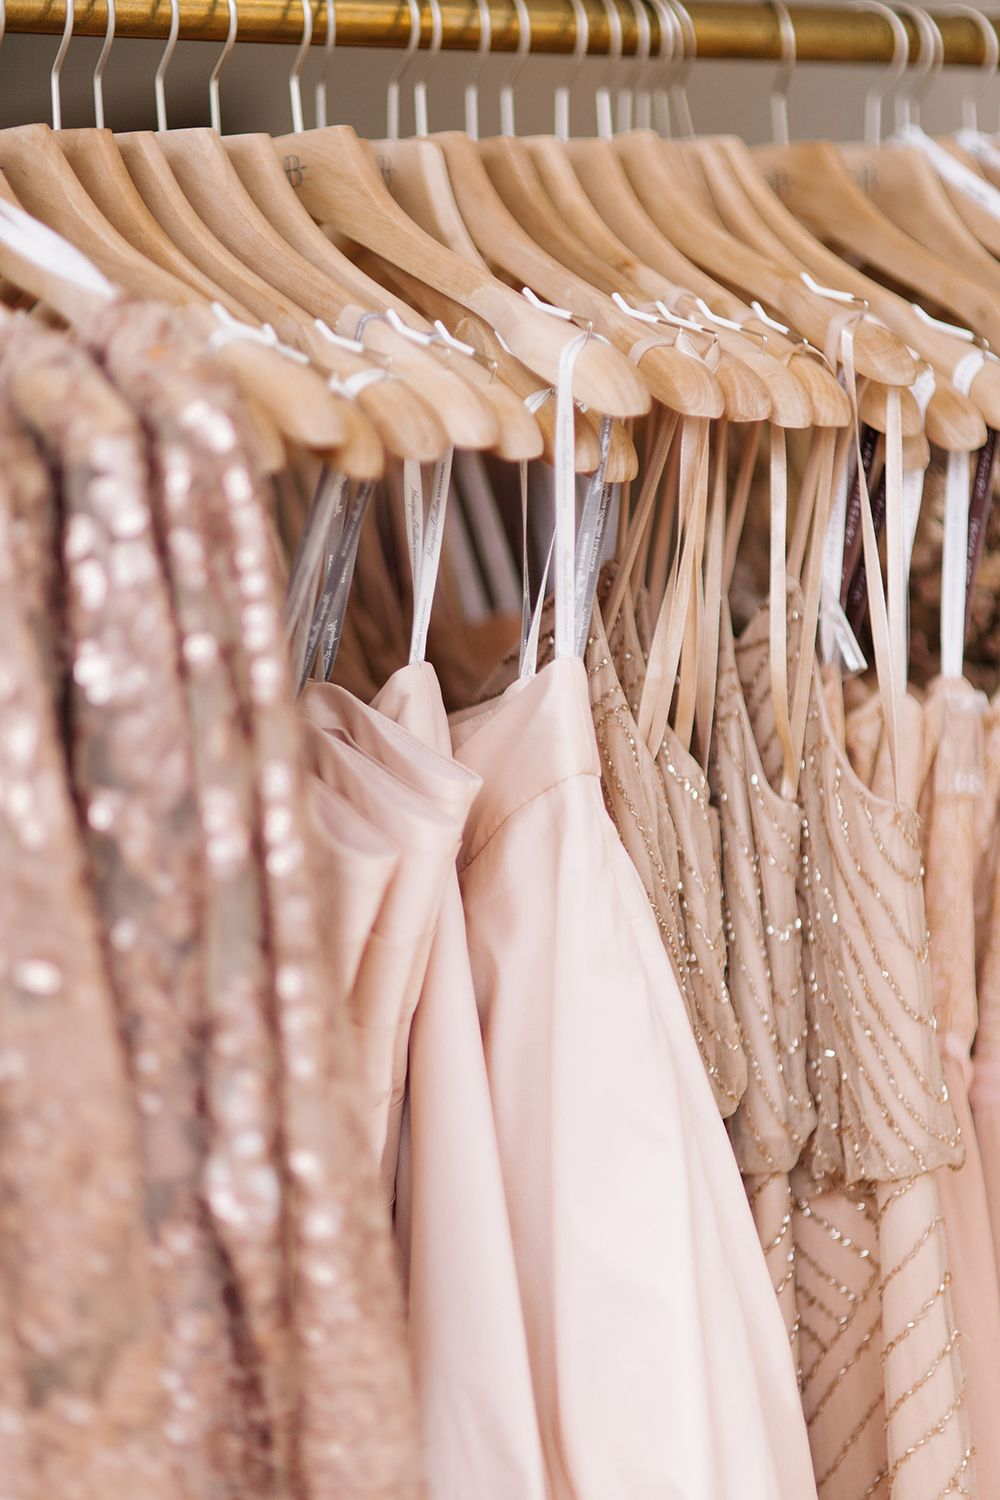 Wedding dress dry cleaning near me  Cantu wait to check out BHLDN for dresses bhldnstorefront